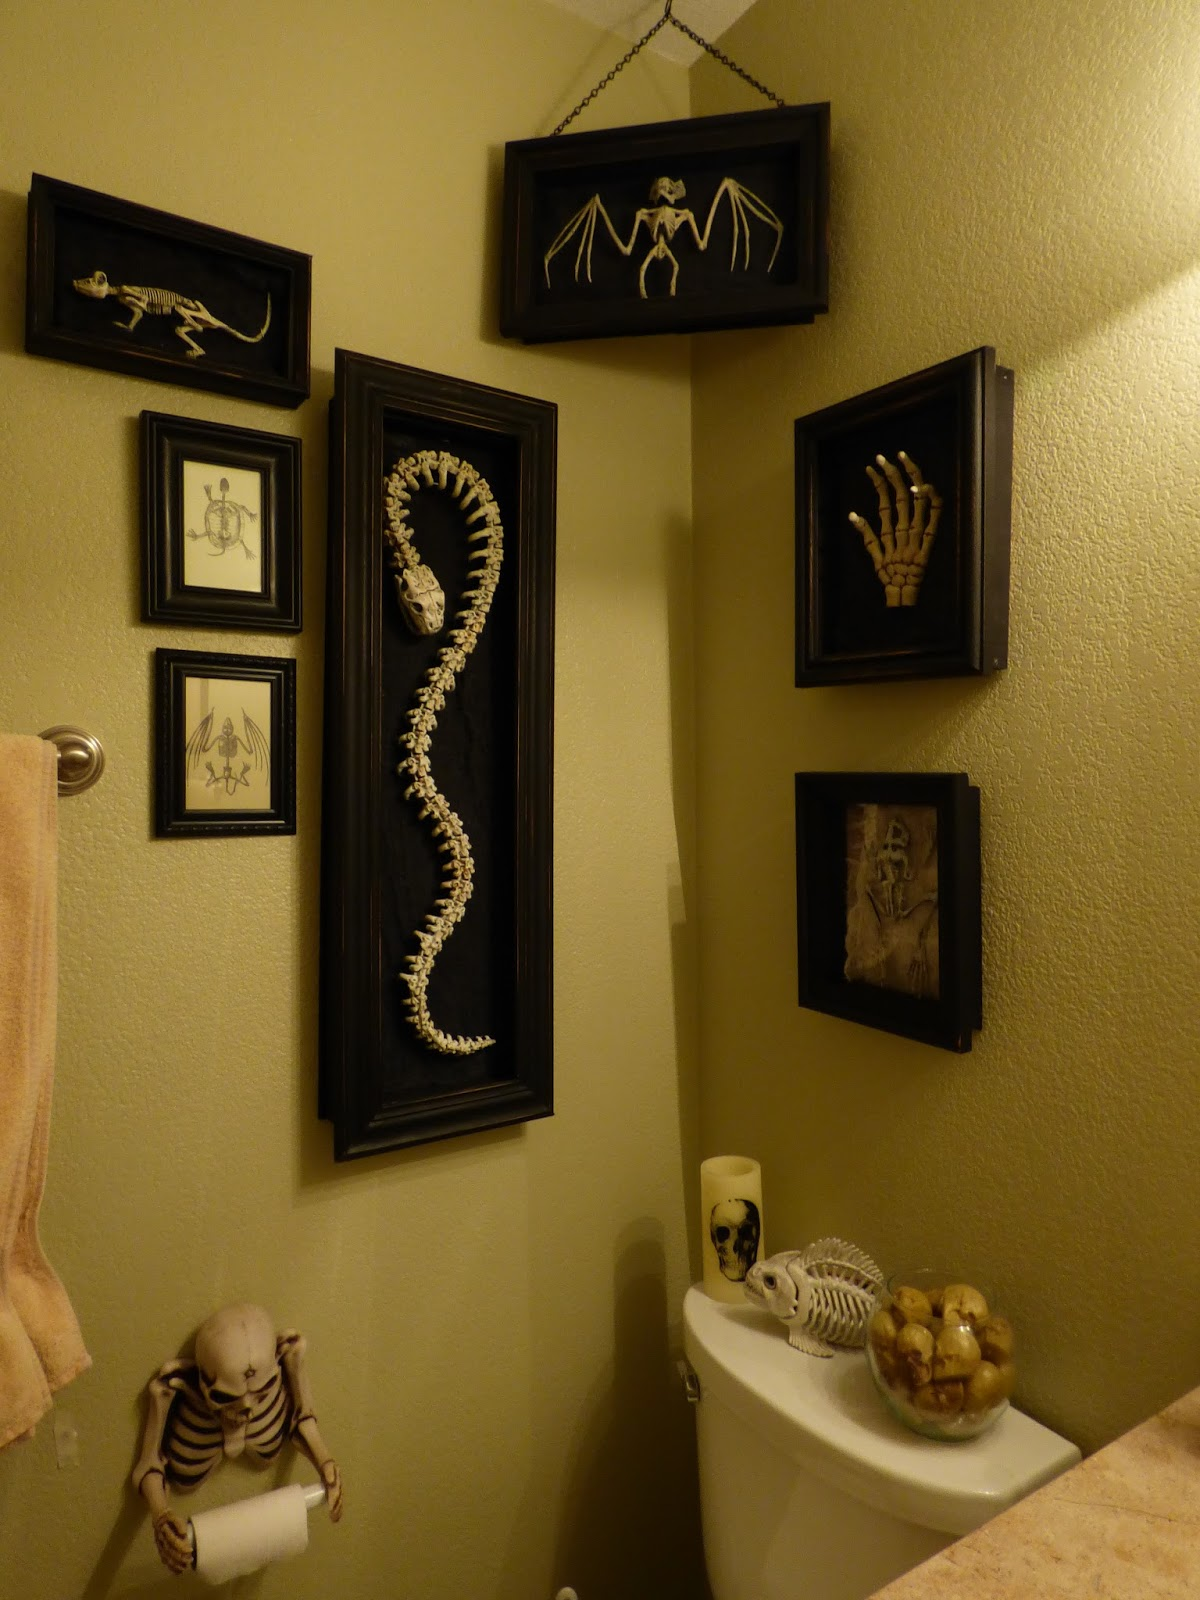 Ideal So I finally finished building shadow boxes for bony bathroom